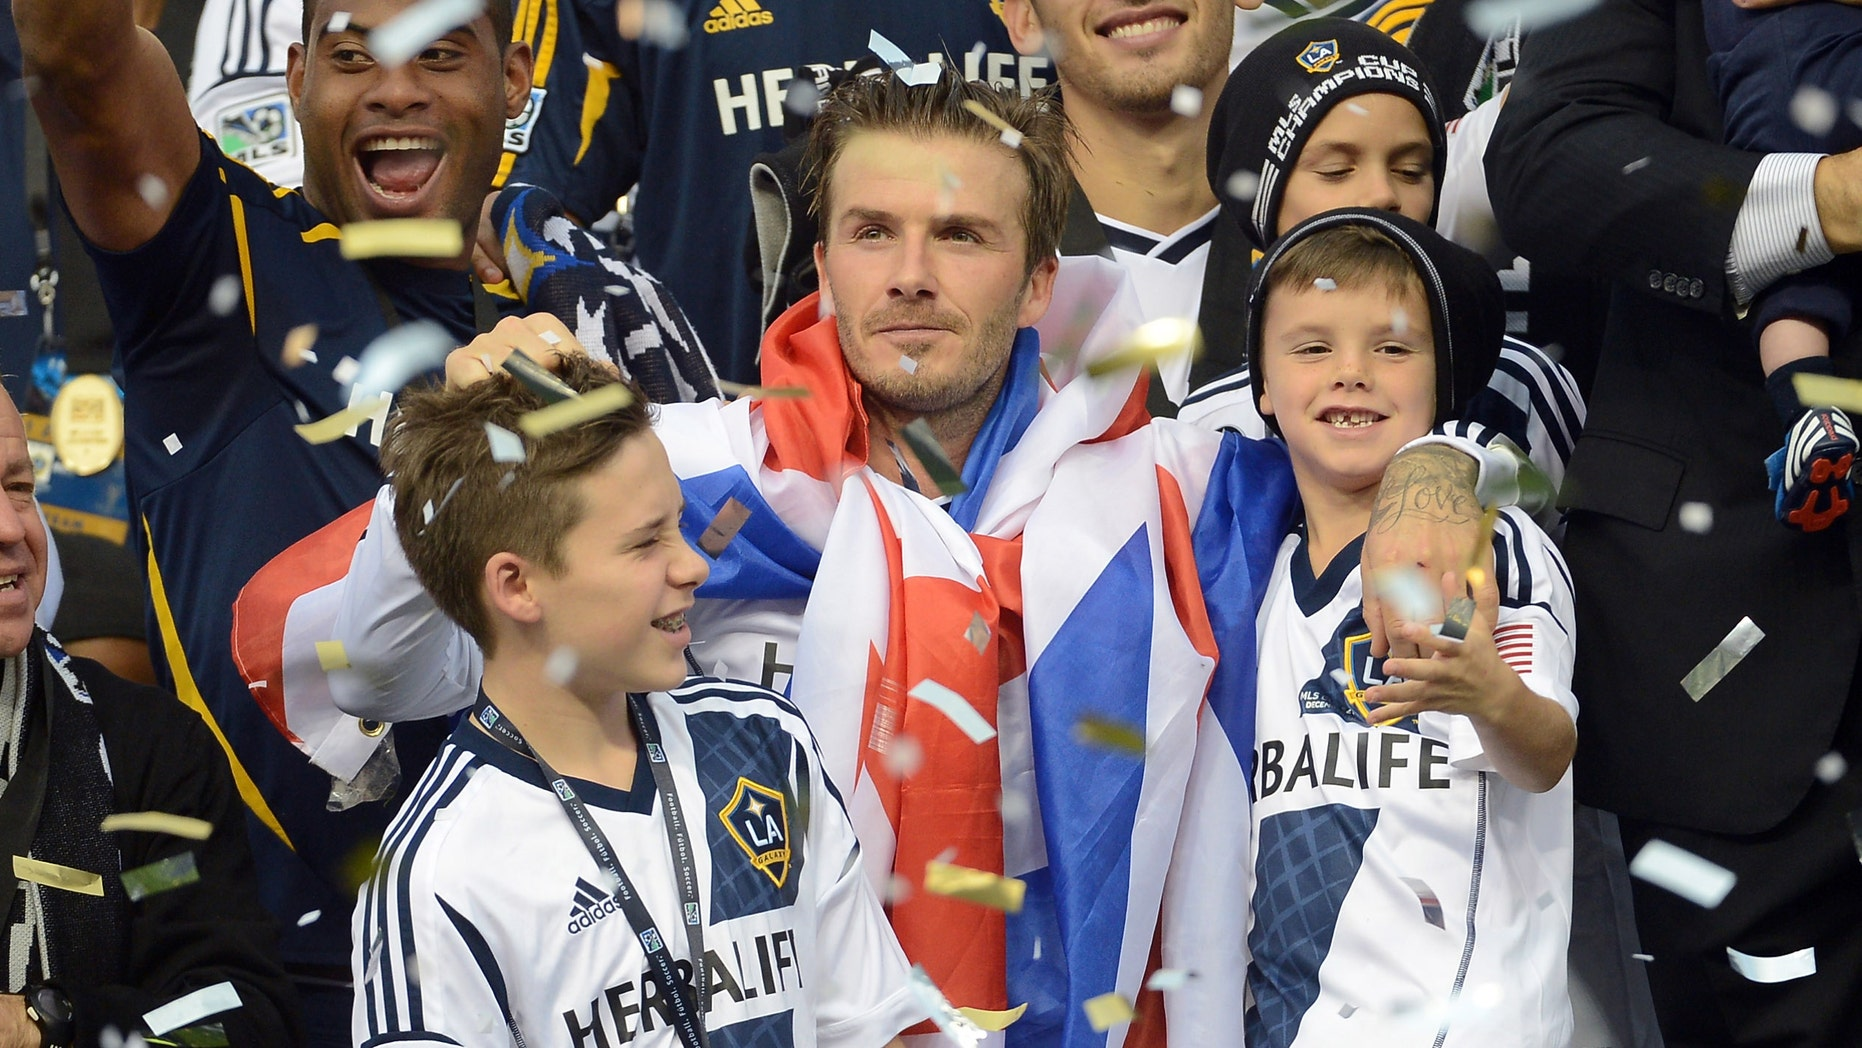 David Beckham #23 of Los Angeles Galaxy celebrates with his sons Brooklyn Beckham, Romeo Beckham and Cruz Bekham after the Galaxy defeat the Houston Dynamo 3-1 to win the 2012 MLS Cup at The Home Depot Center on December 1, 2012 in Carson, California.  (Photo by Harry How/Getty Images)